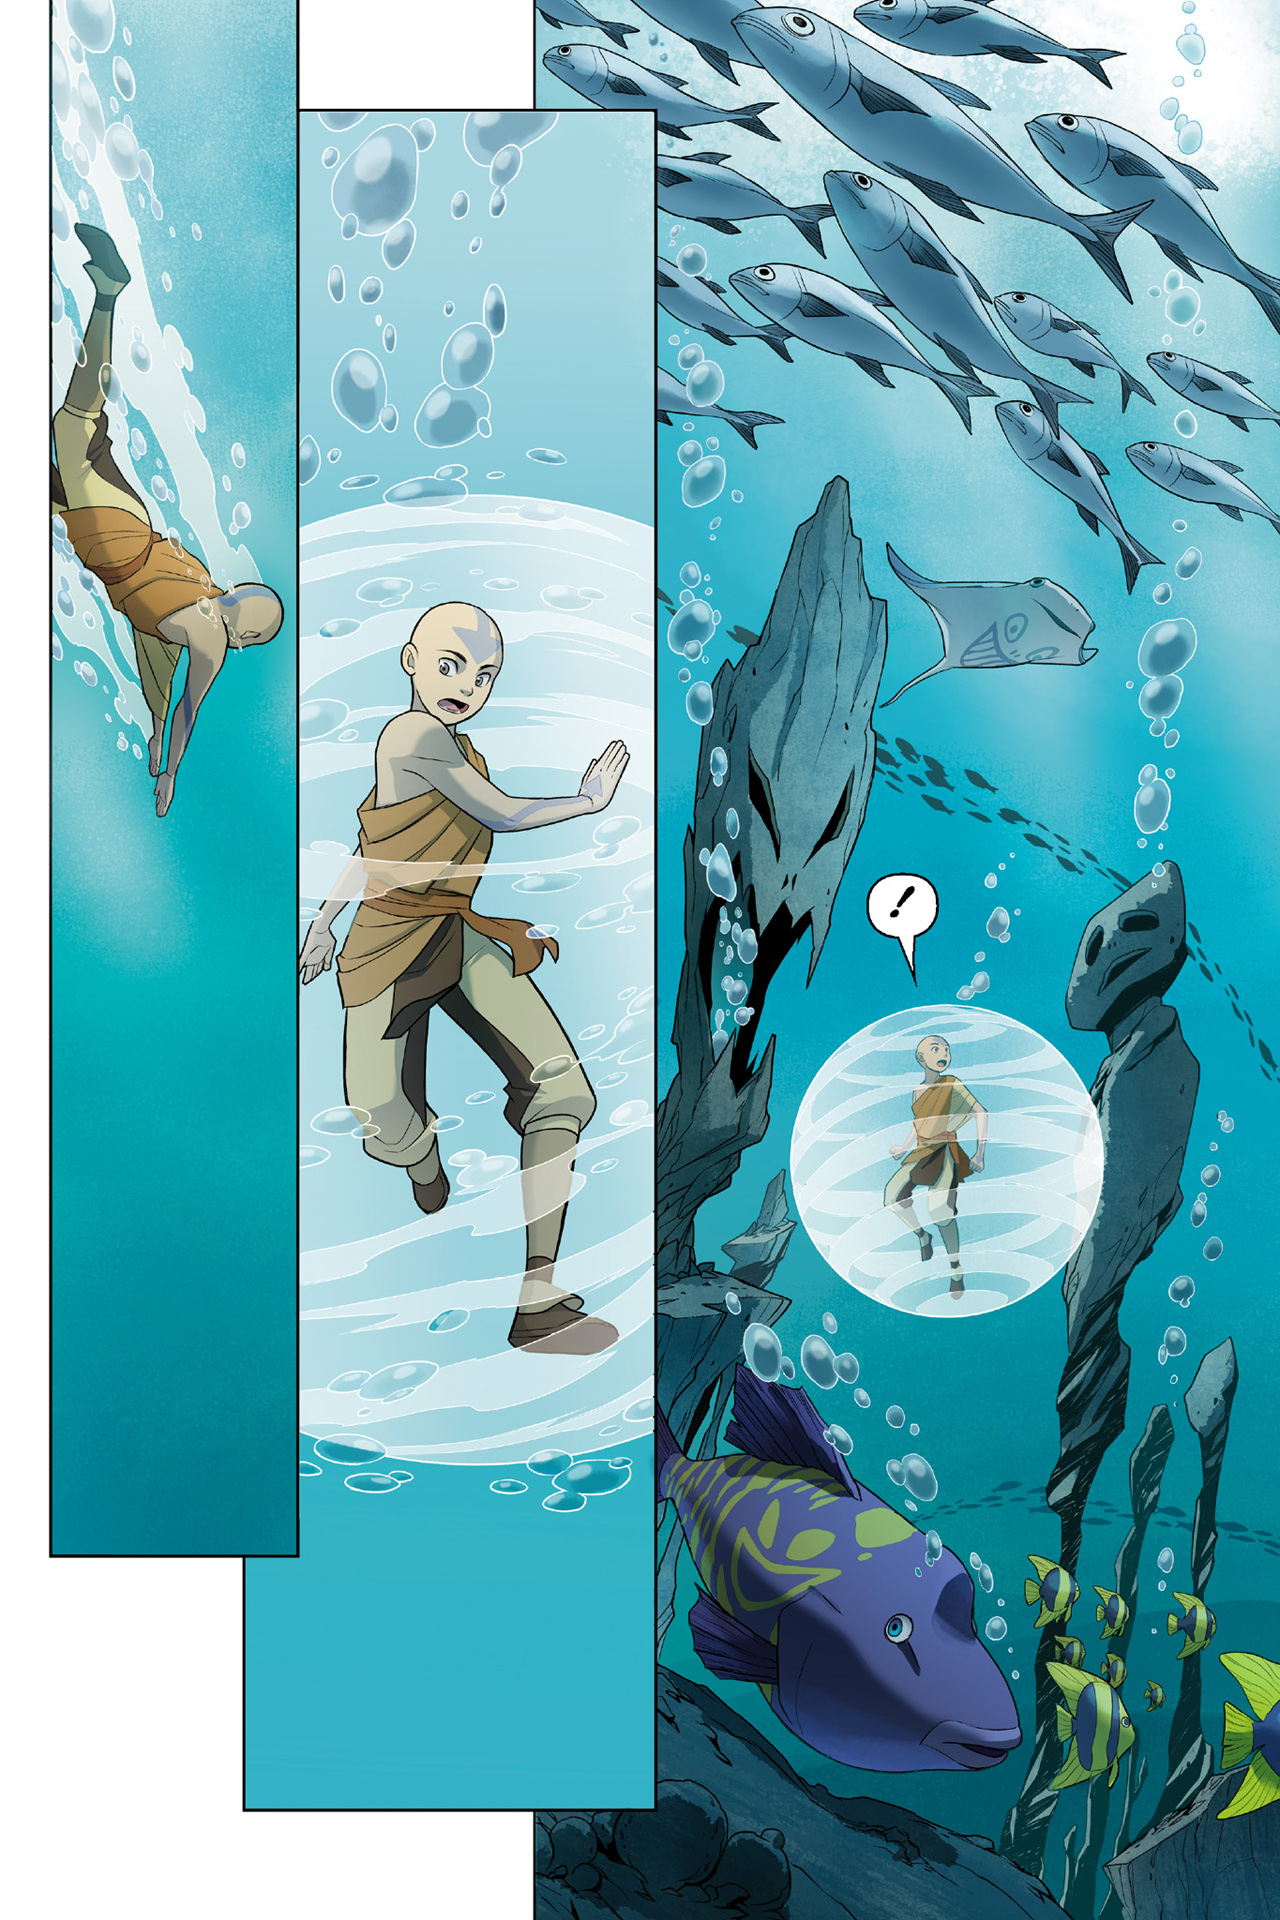 Read online Nickelodeon Avatar: The Last Airbender - The Search comic -  Issue # Part 3 - 23